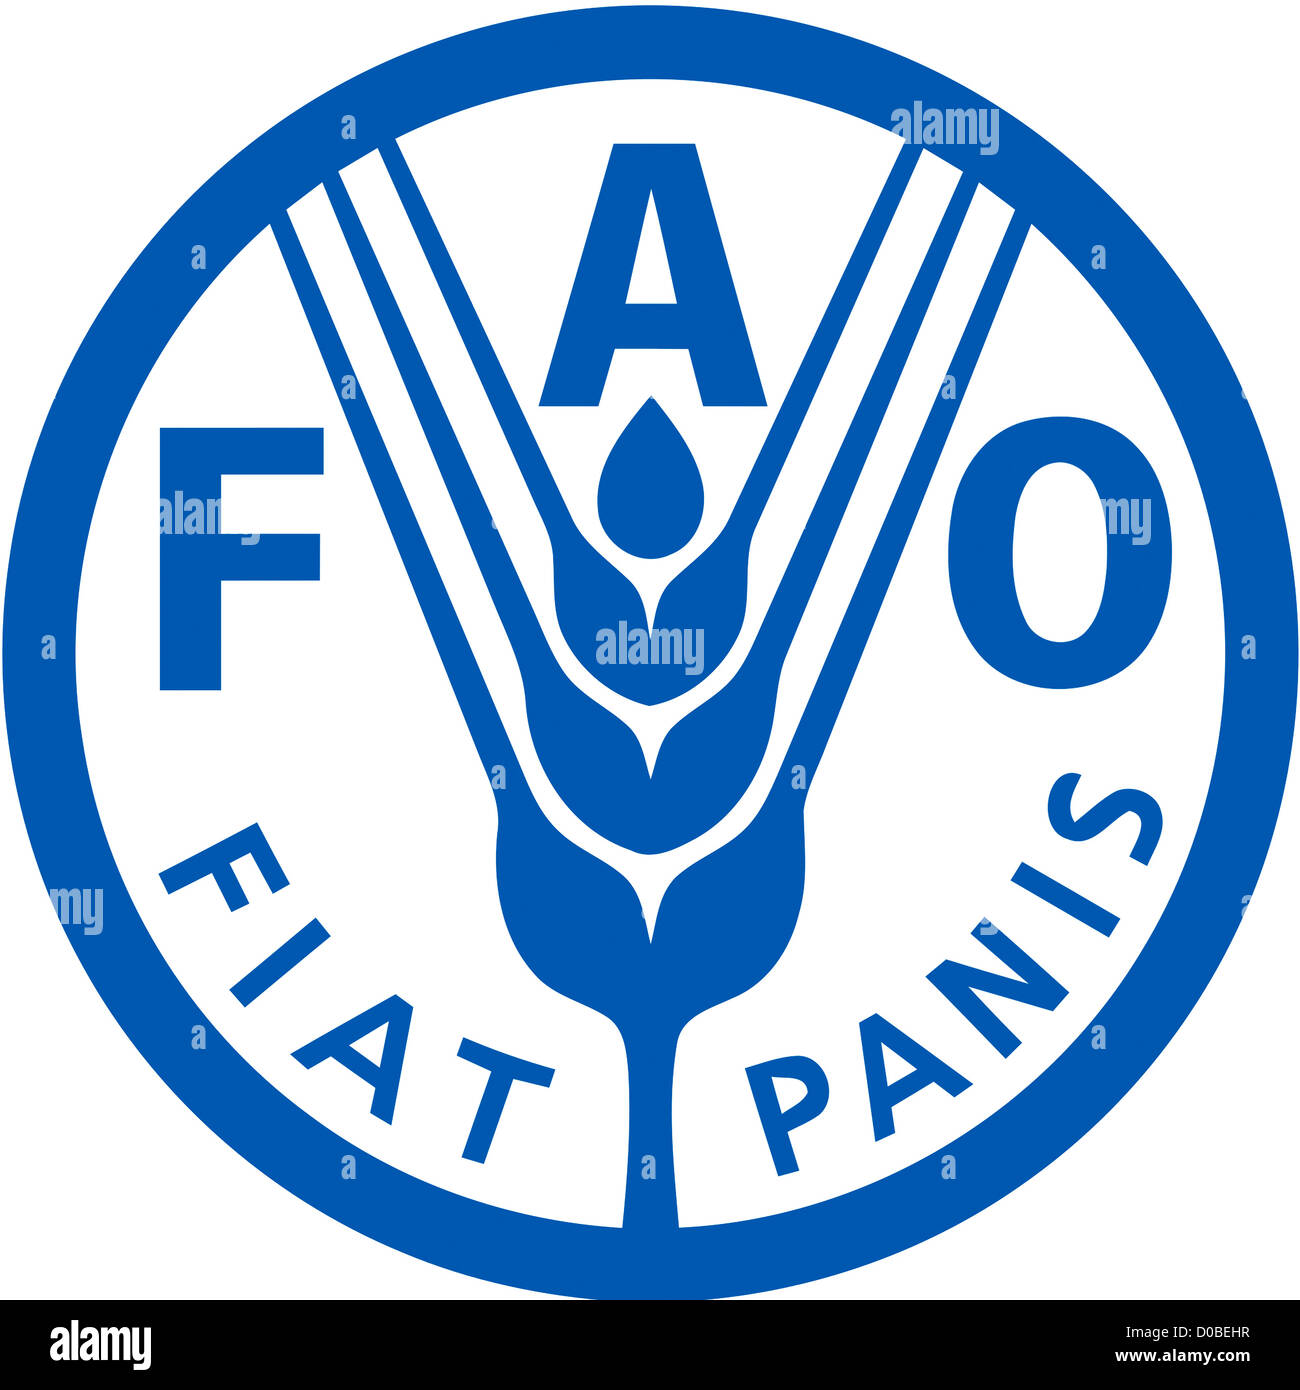 Logo of the Food and Agriculture Organization FAO of the United Nations based in Rome. - Stock Image